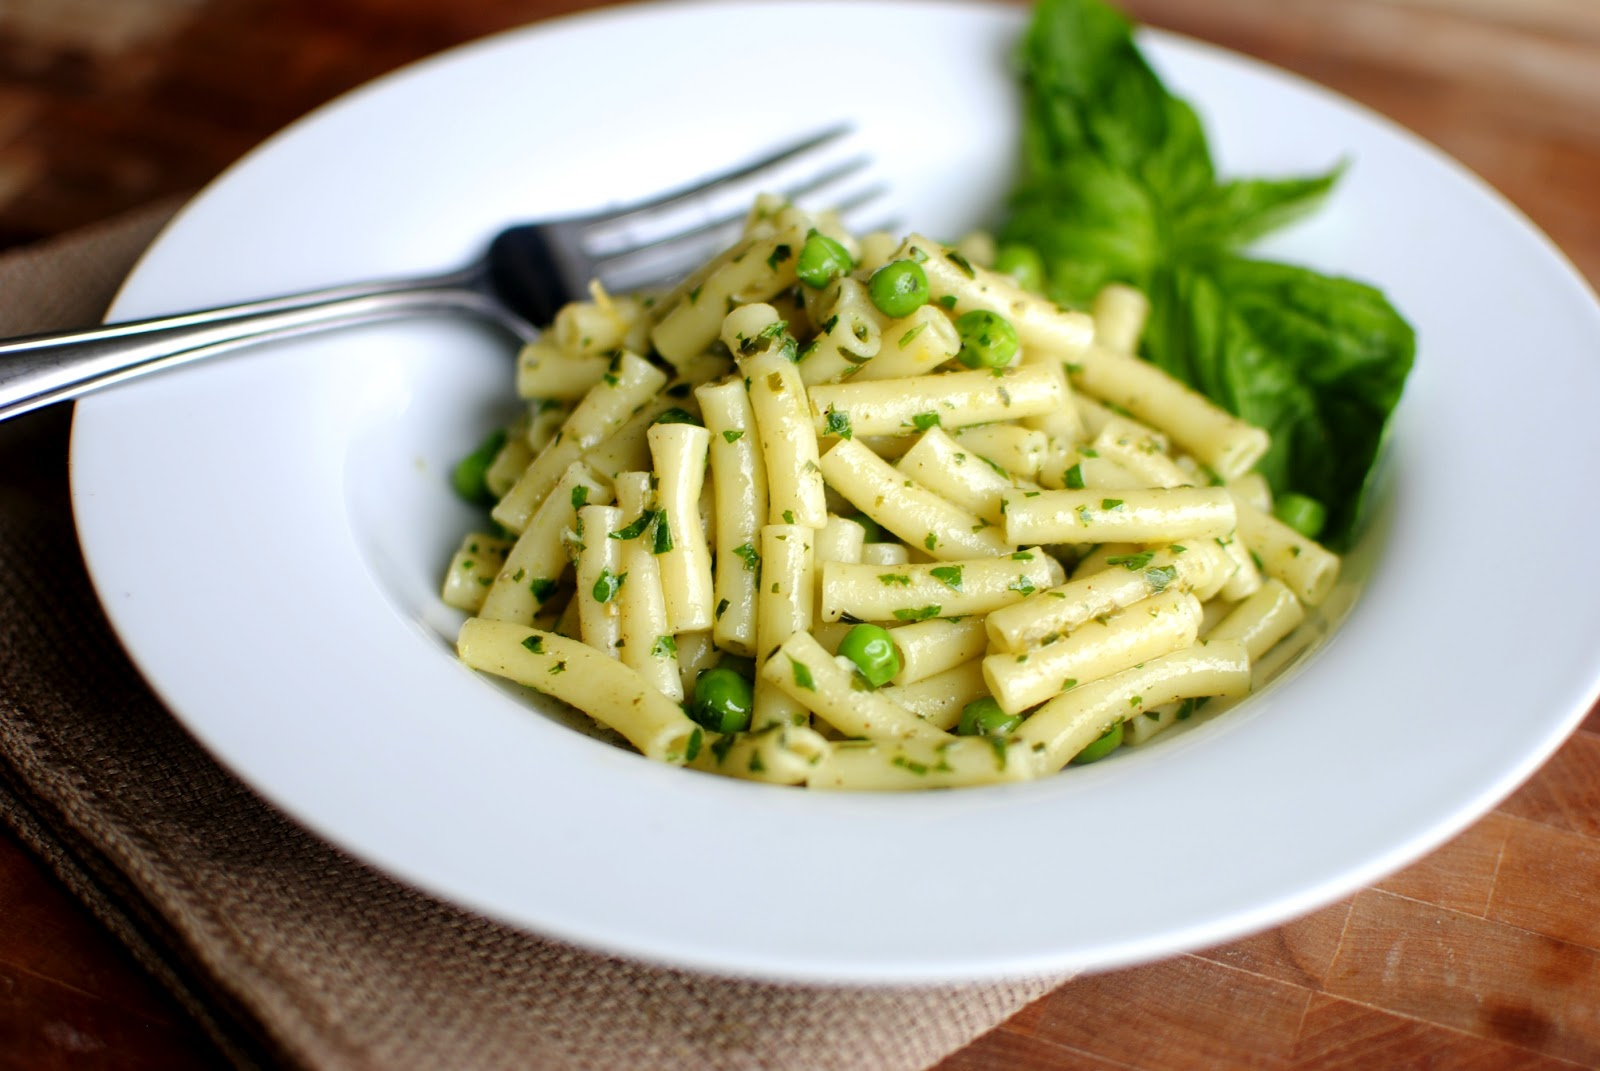 lemon basil pesto pasta ingredients 1 pound small pasta 1